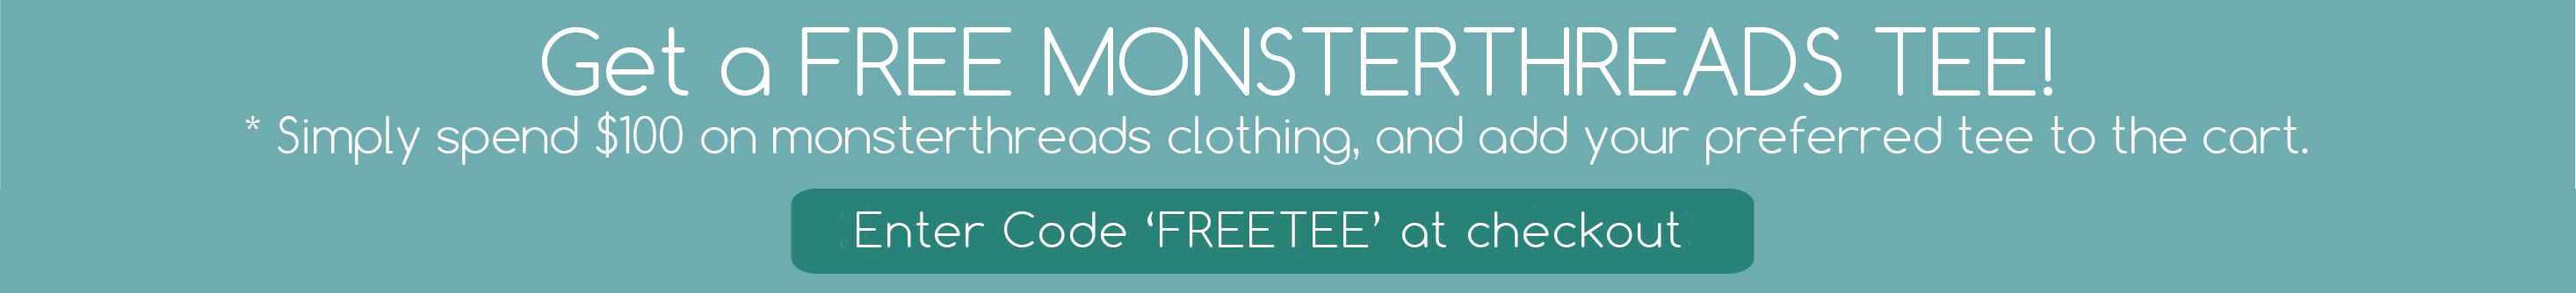 Get a FREE TEE When you Spend over $100 on Monsterthreads Clothing with Code 'FREETEE'